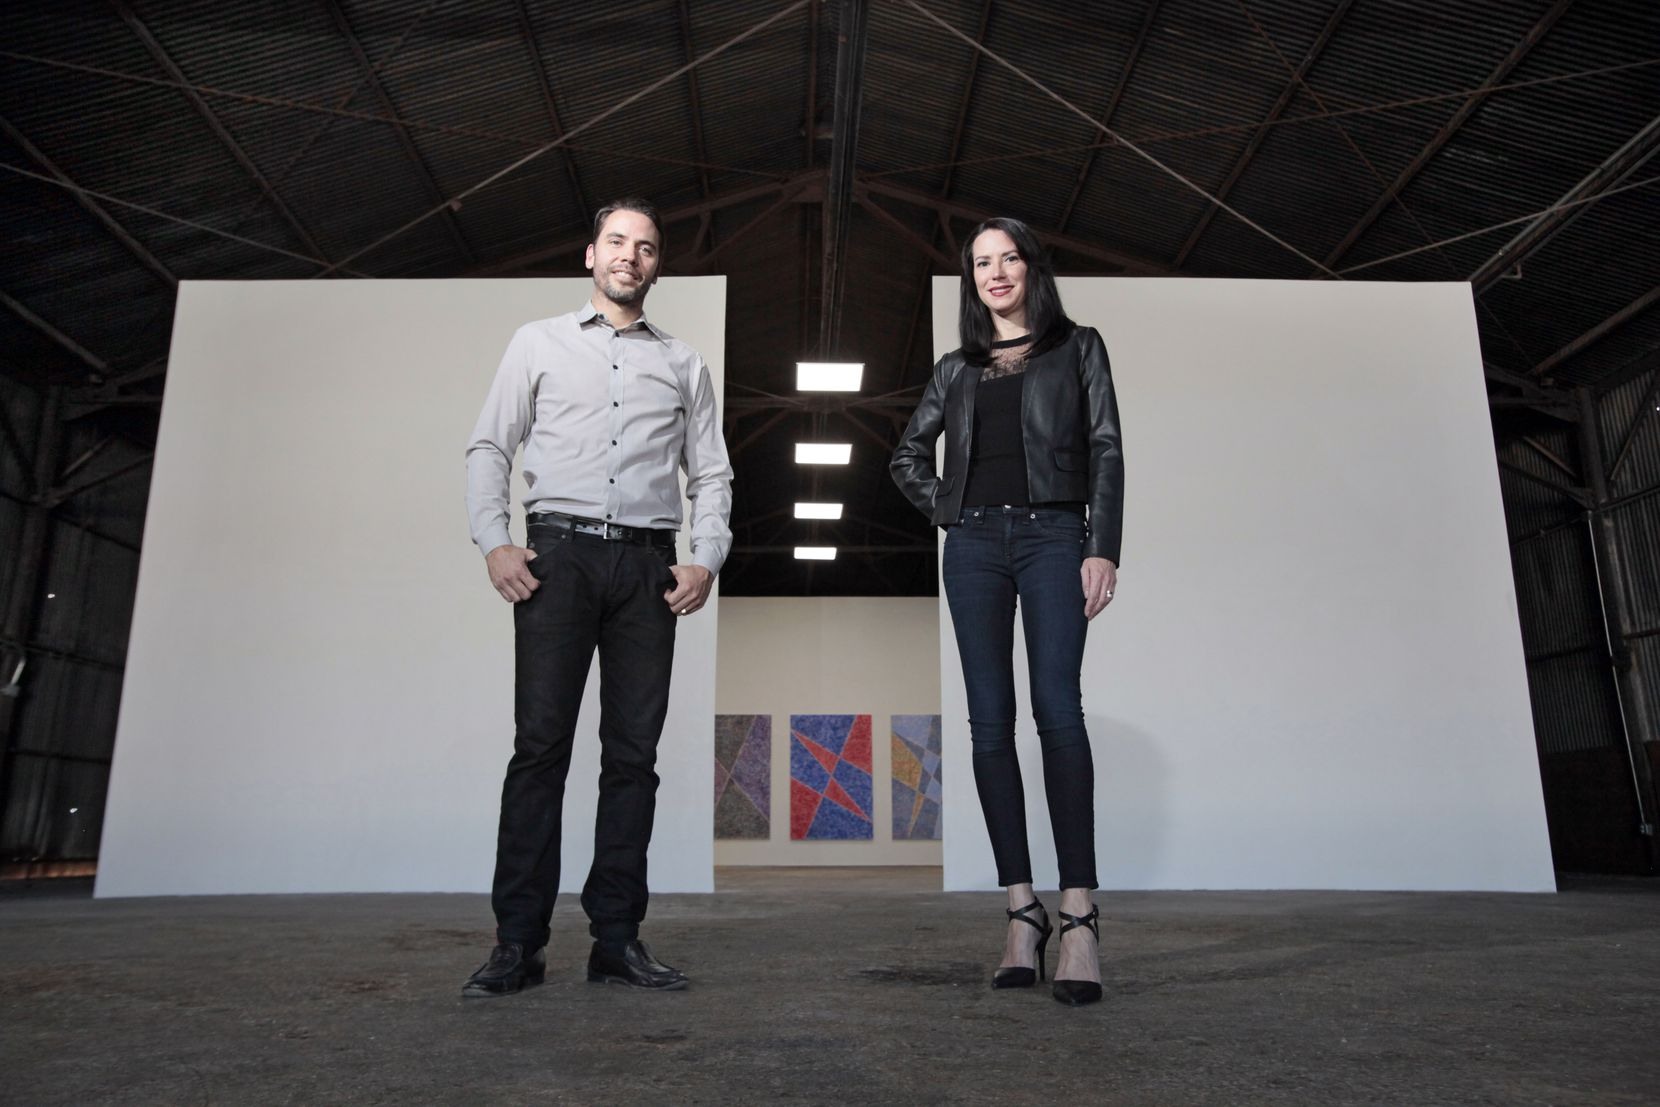 Jason Koen and Nancy Koen at their art project space they co-founded in 2016 called The Box Company.